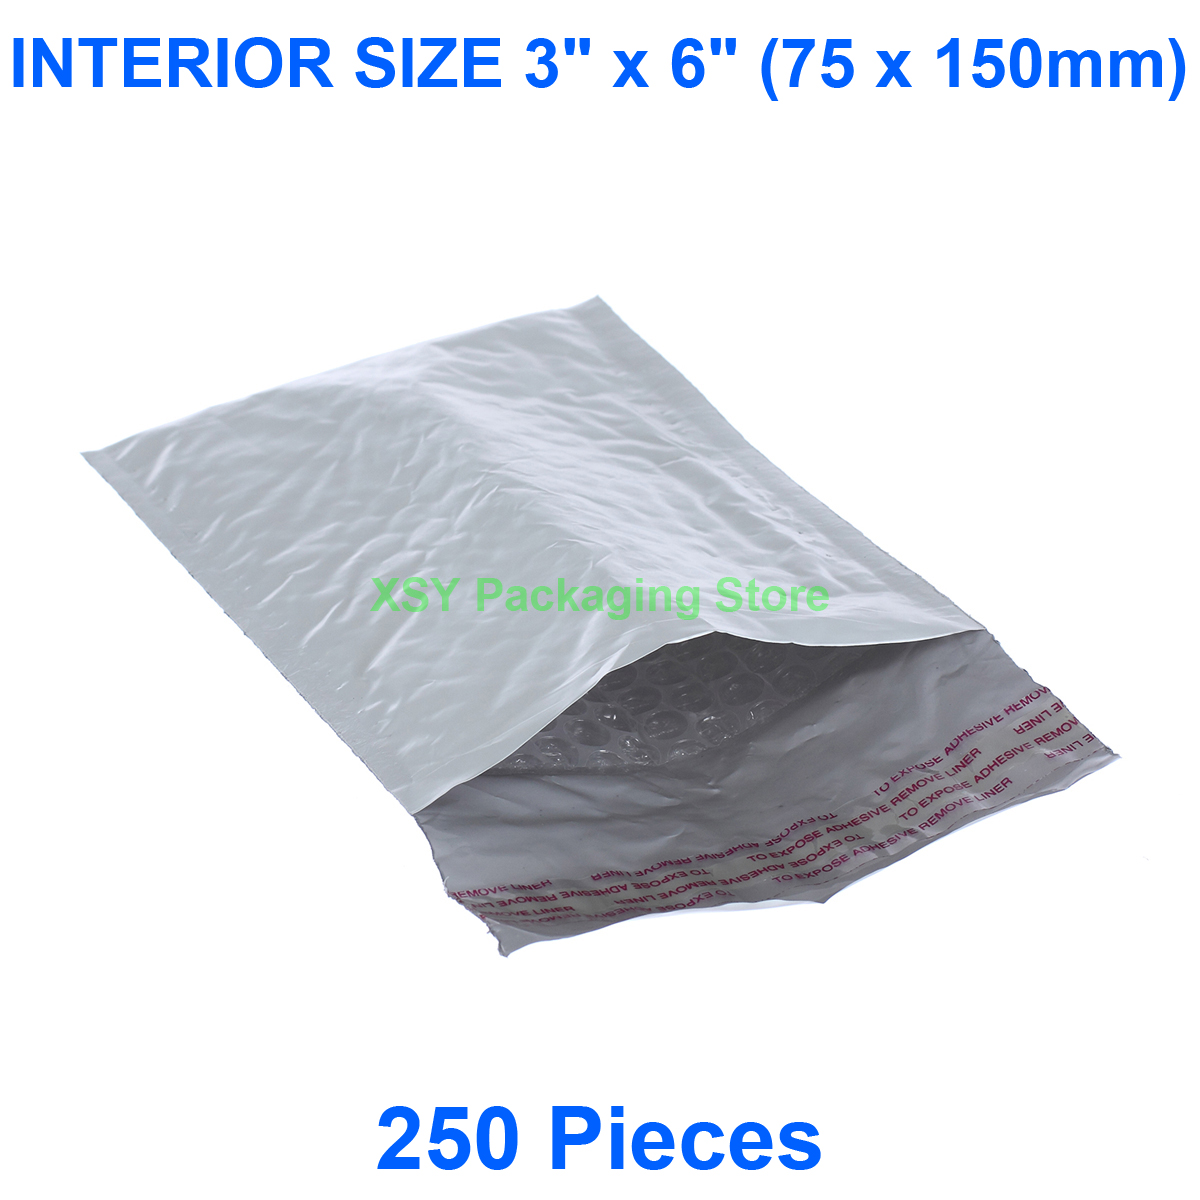 250 Pieces Poly Bubble Padded Envelopes INTERIOR SIZE 3